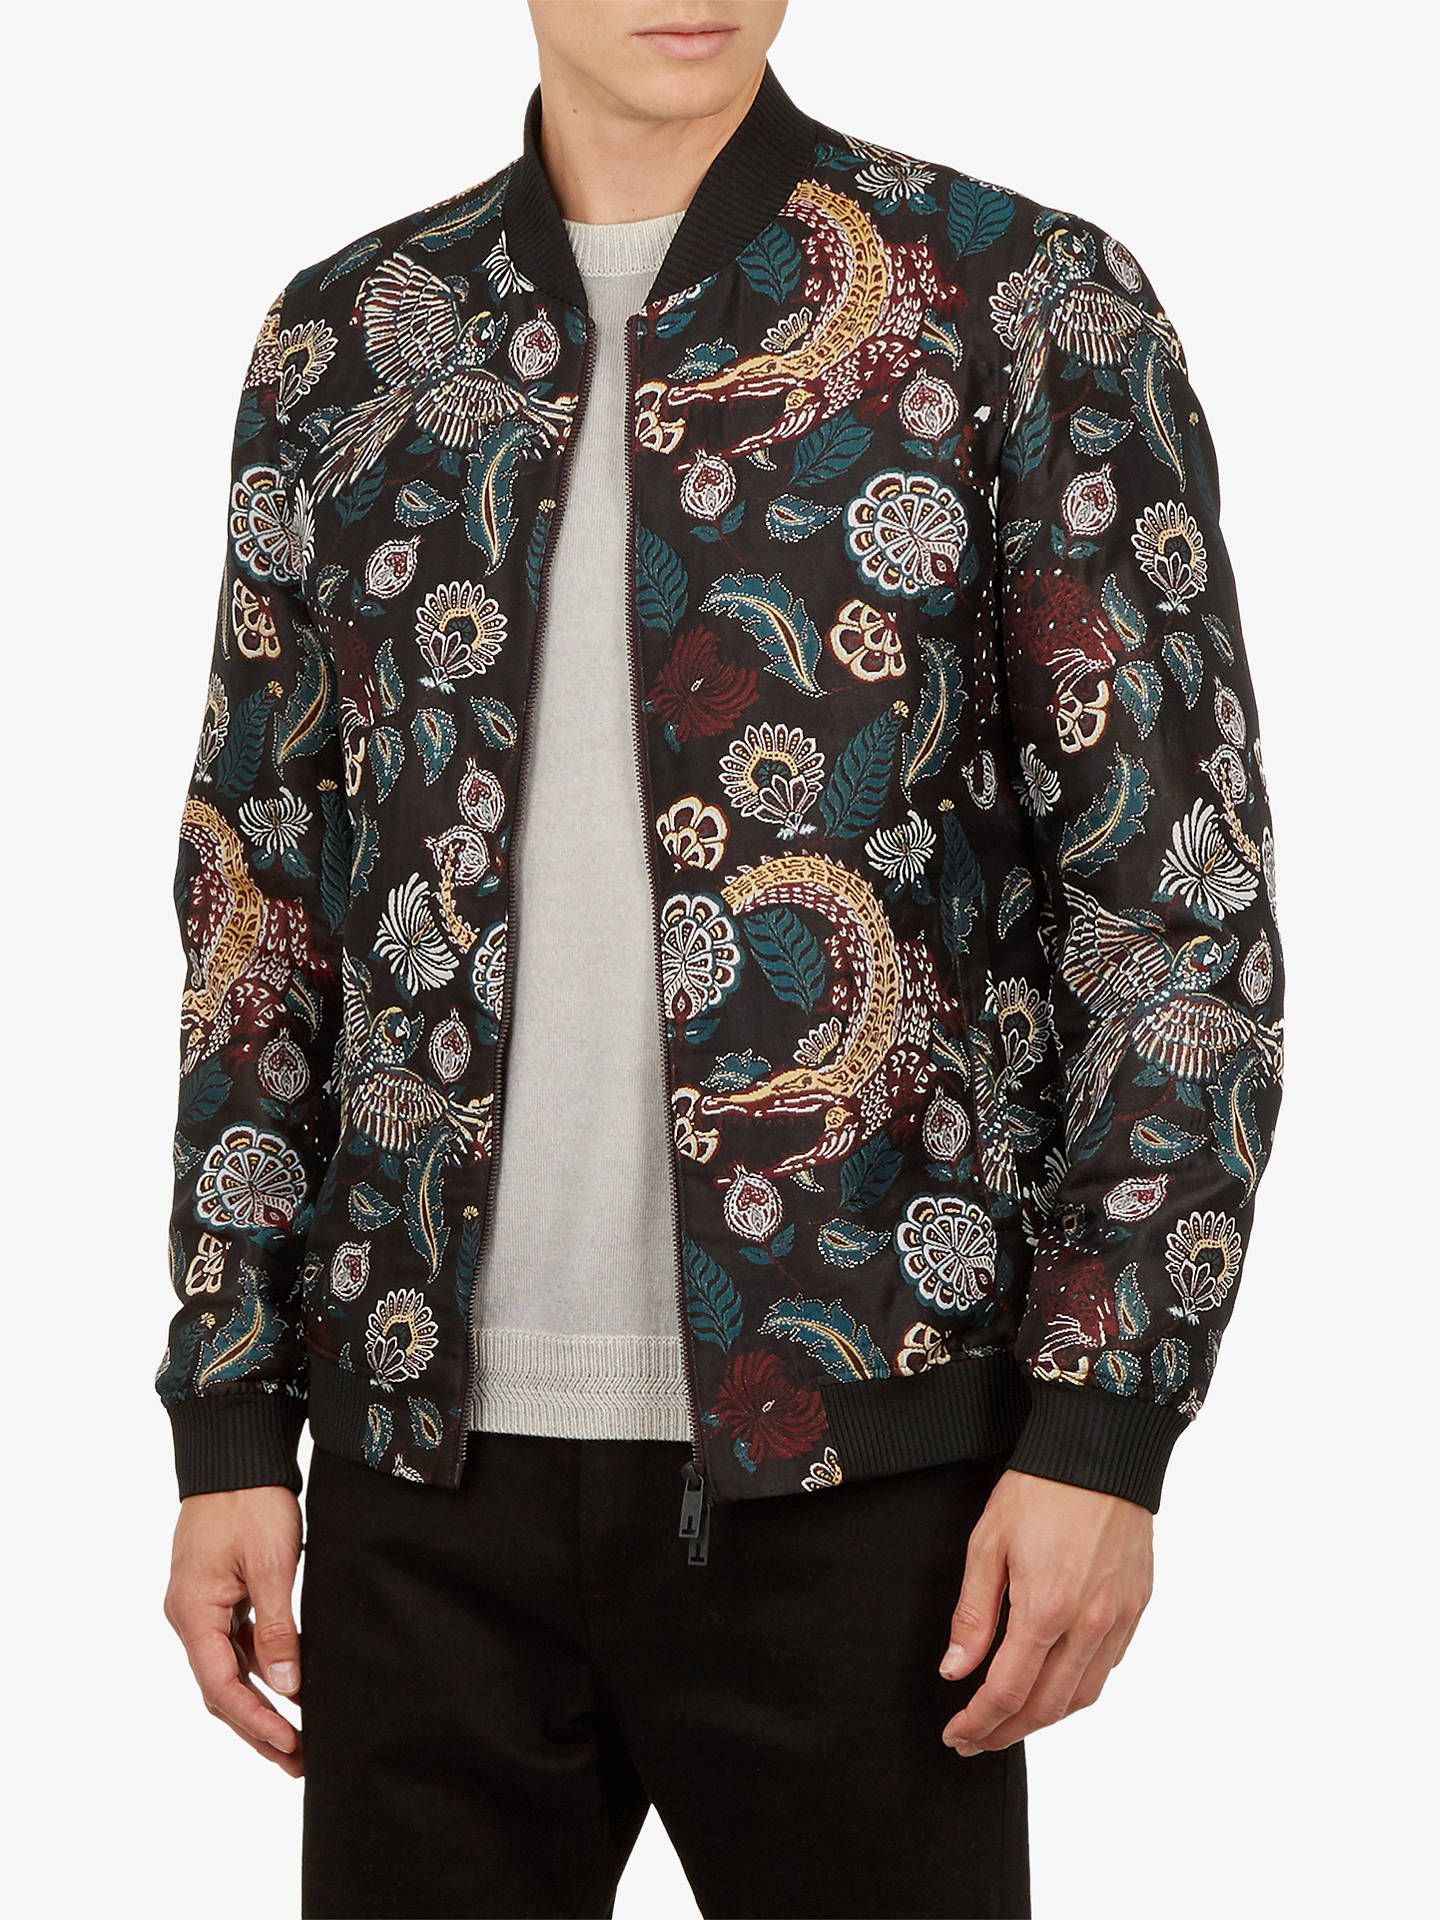 Ted Baker Queso Tiger Bomber Jacket Dark Red Bomber Jacket Fashion Jackets [ 1920 x 1440 Pixel ]